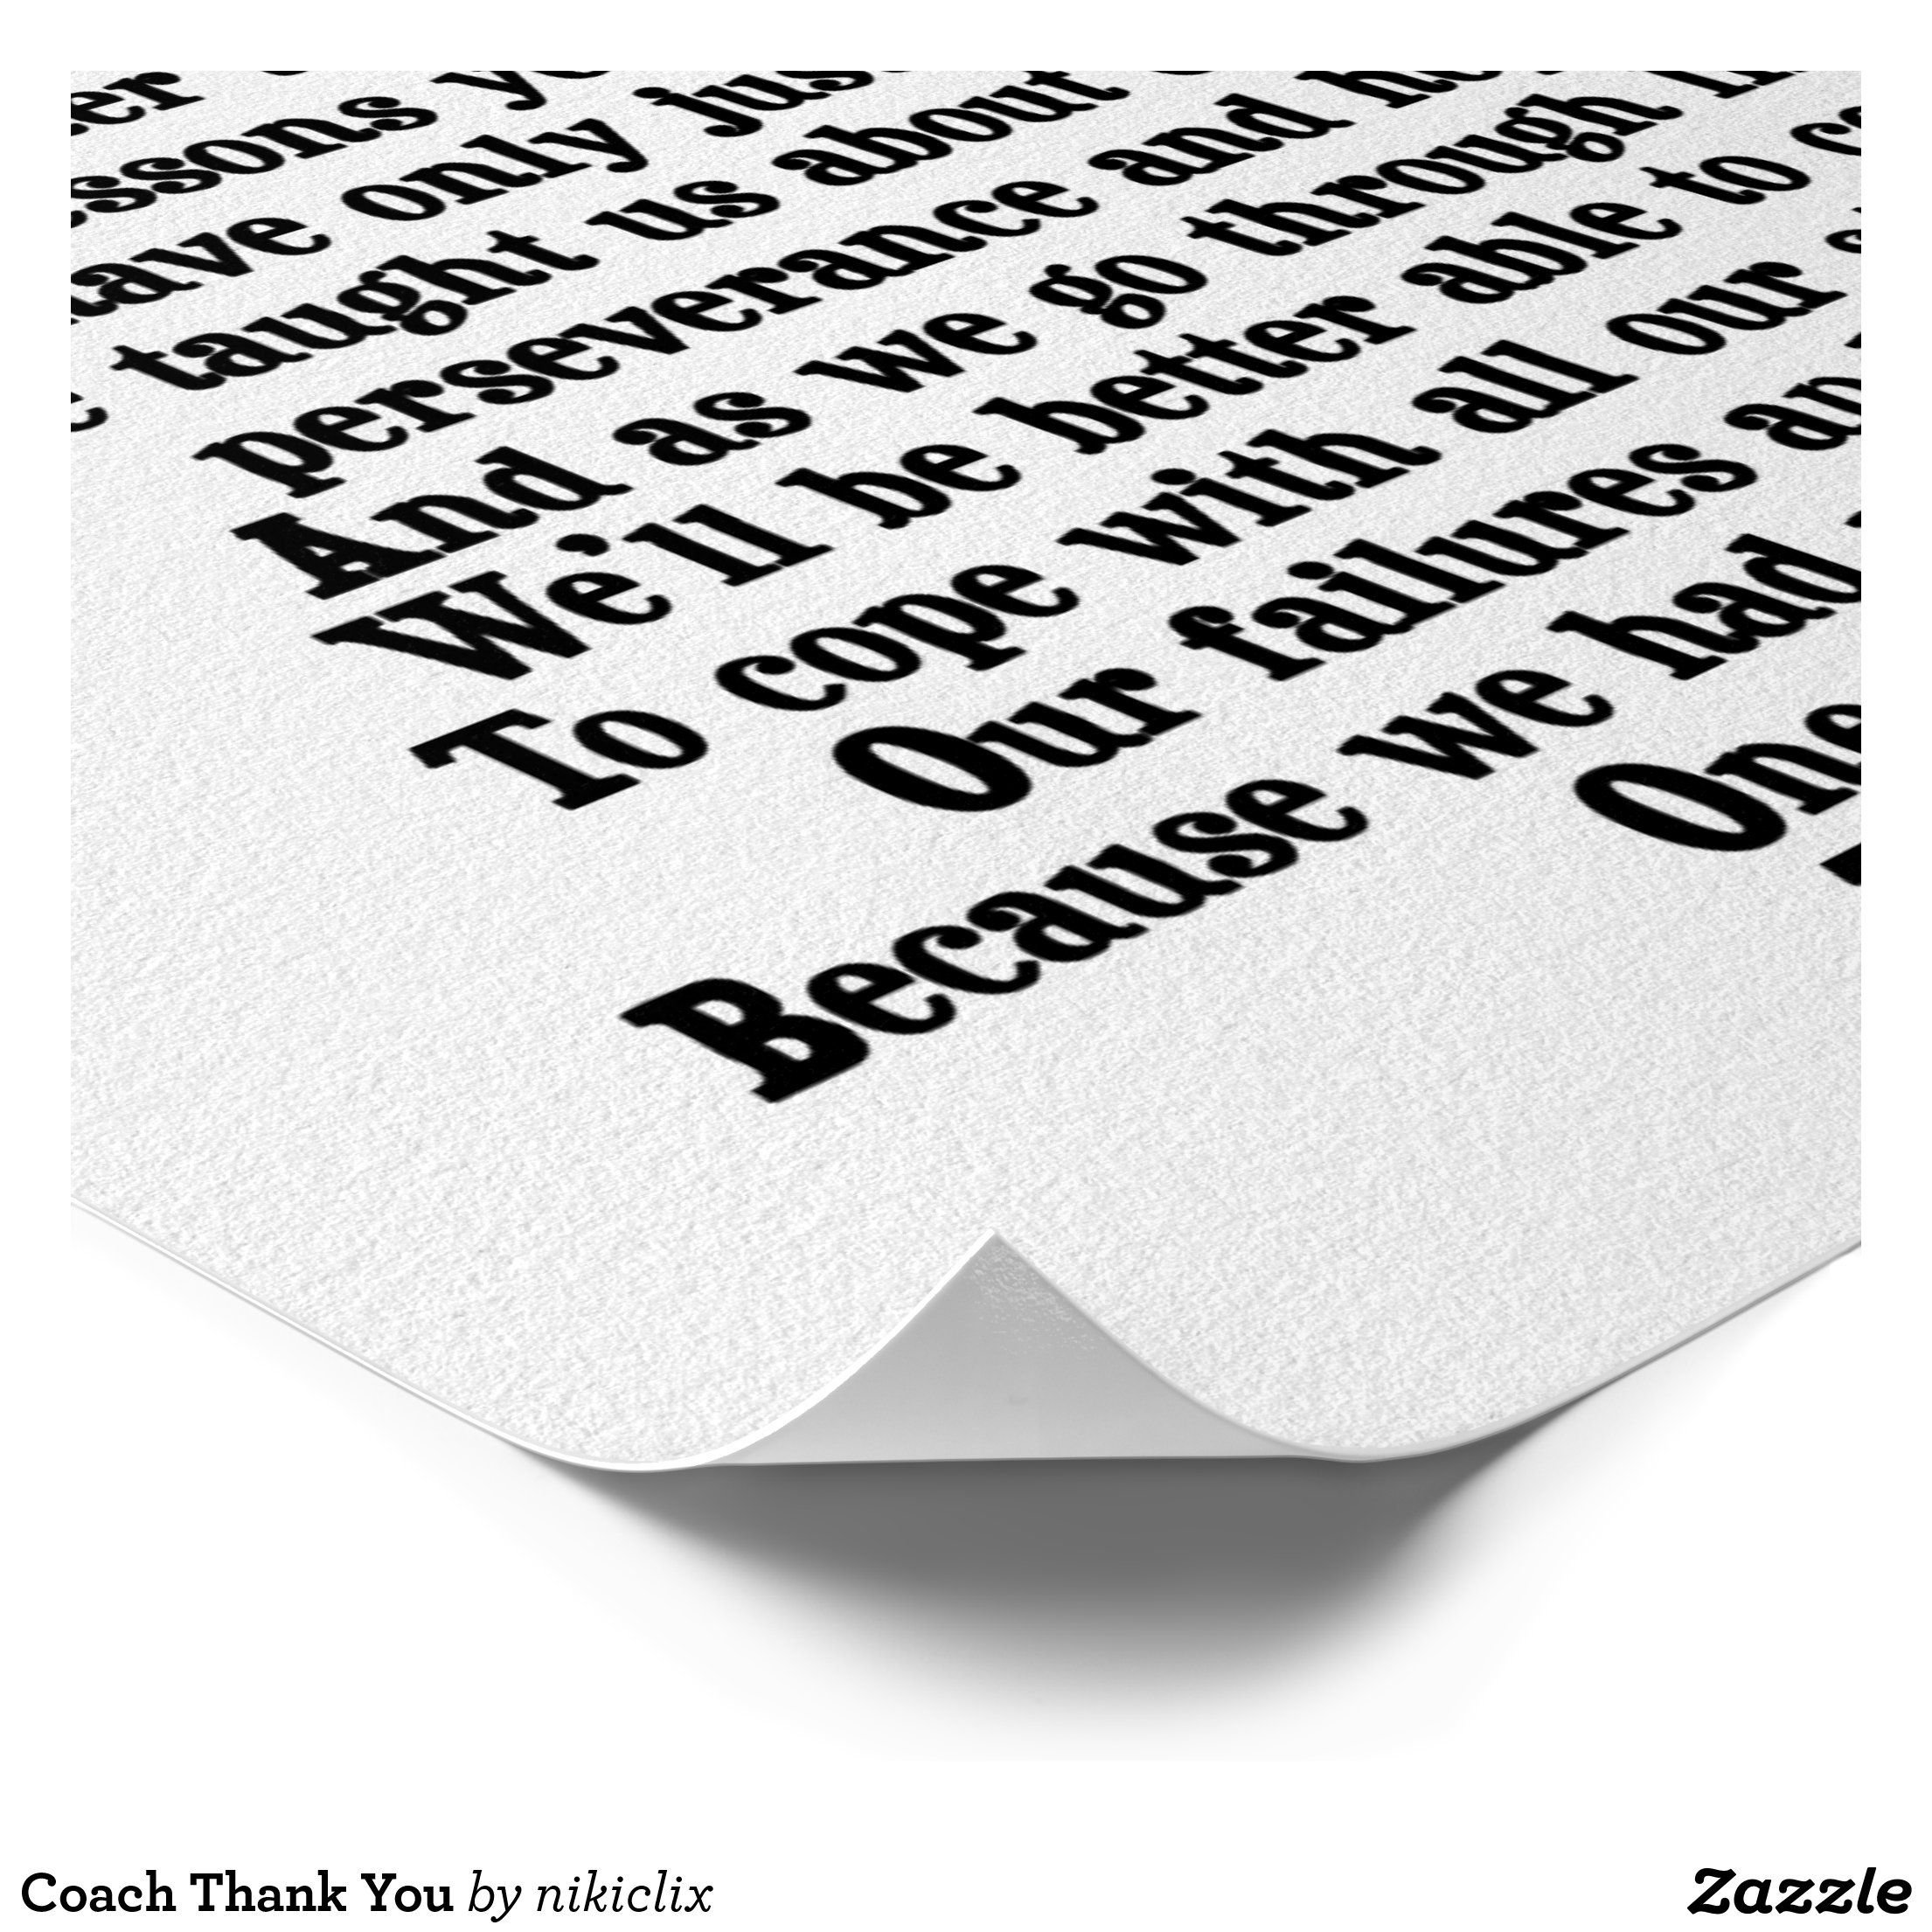 Coach Thank You Poster Zazzle Com In 2020 Thank You Poster Coach Appreciation Gifts Favorite Quotes